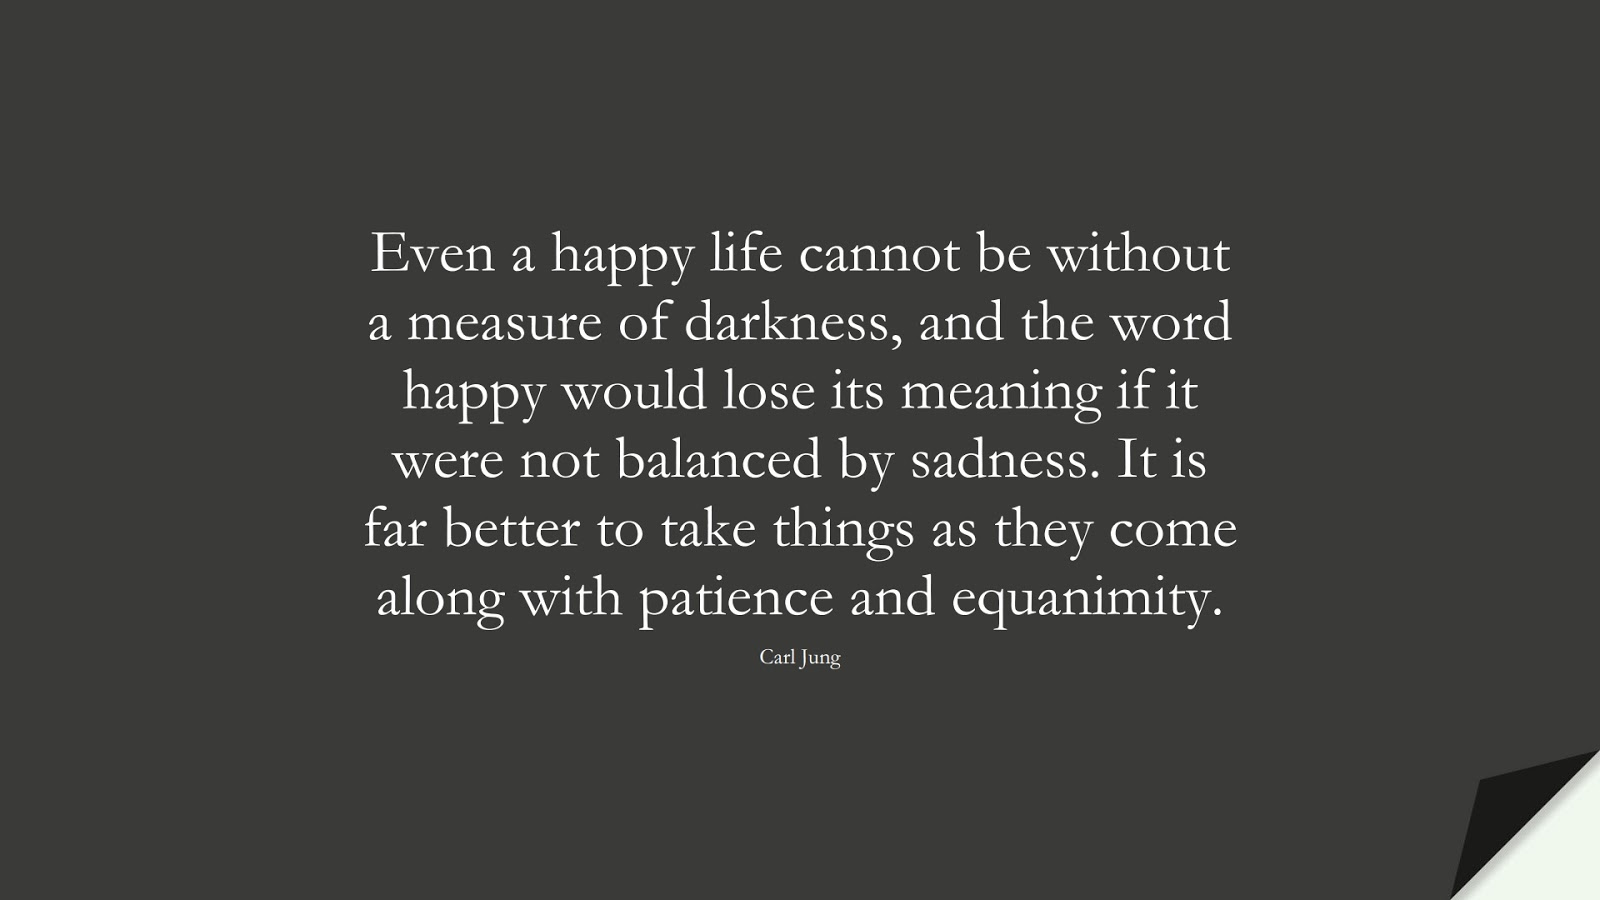 Even a happy life cannot be without a measure of darkness, and the word happy would lose its meaning if it were not balanced by sadness. It is far better to take things as they come along with patience and equanimity. (Carl Jung);  #HappinessQuotes